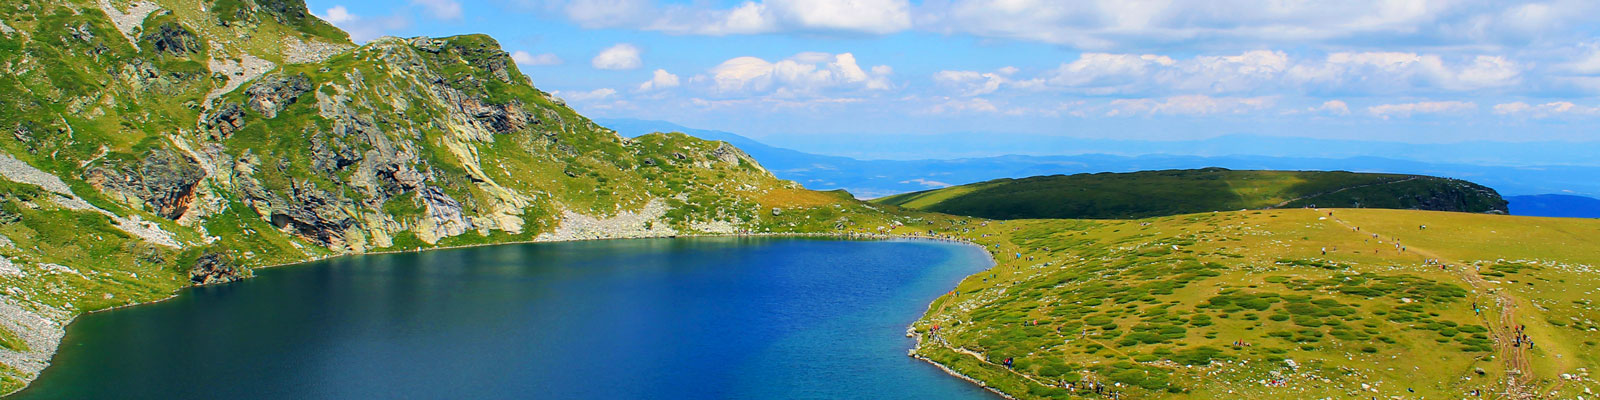 Bulgaria Vegan Travel Guide - Seven Rila Lakes